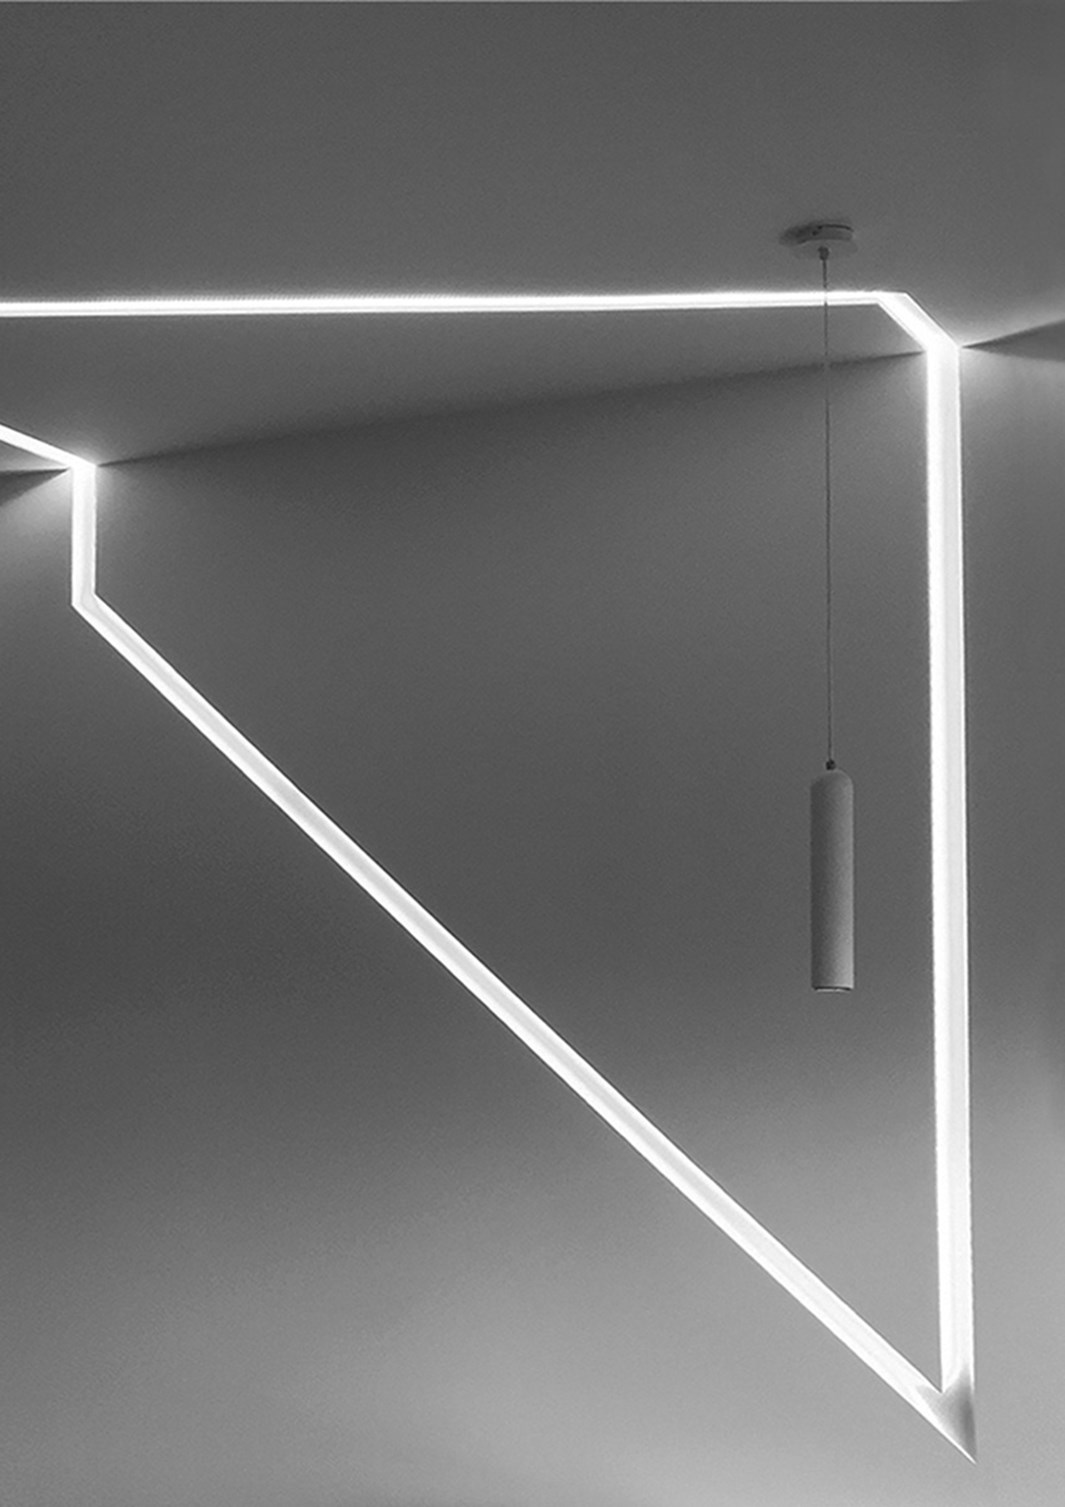 Nama Athina Modular 08 Curve R250 Out Plaster In Linear LED Profile| Image:24